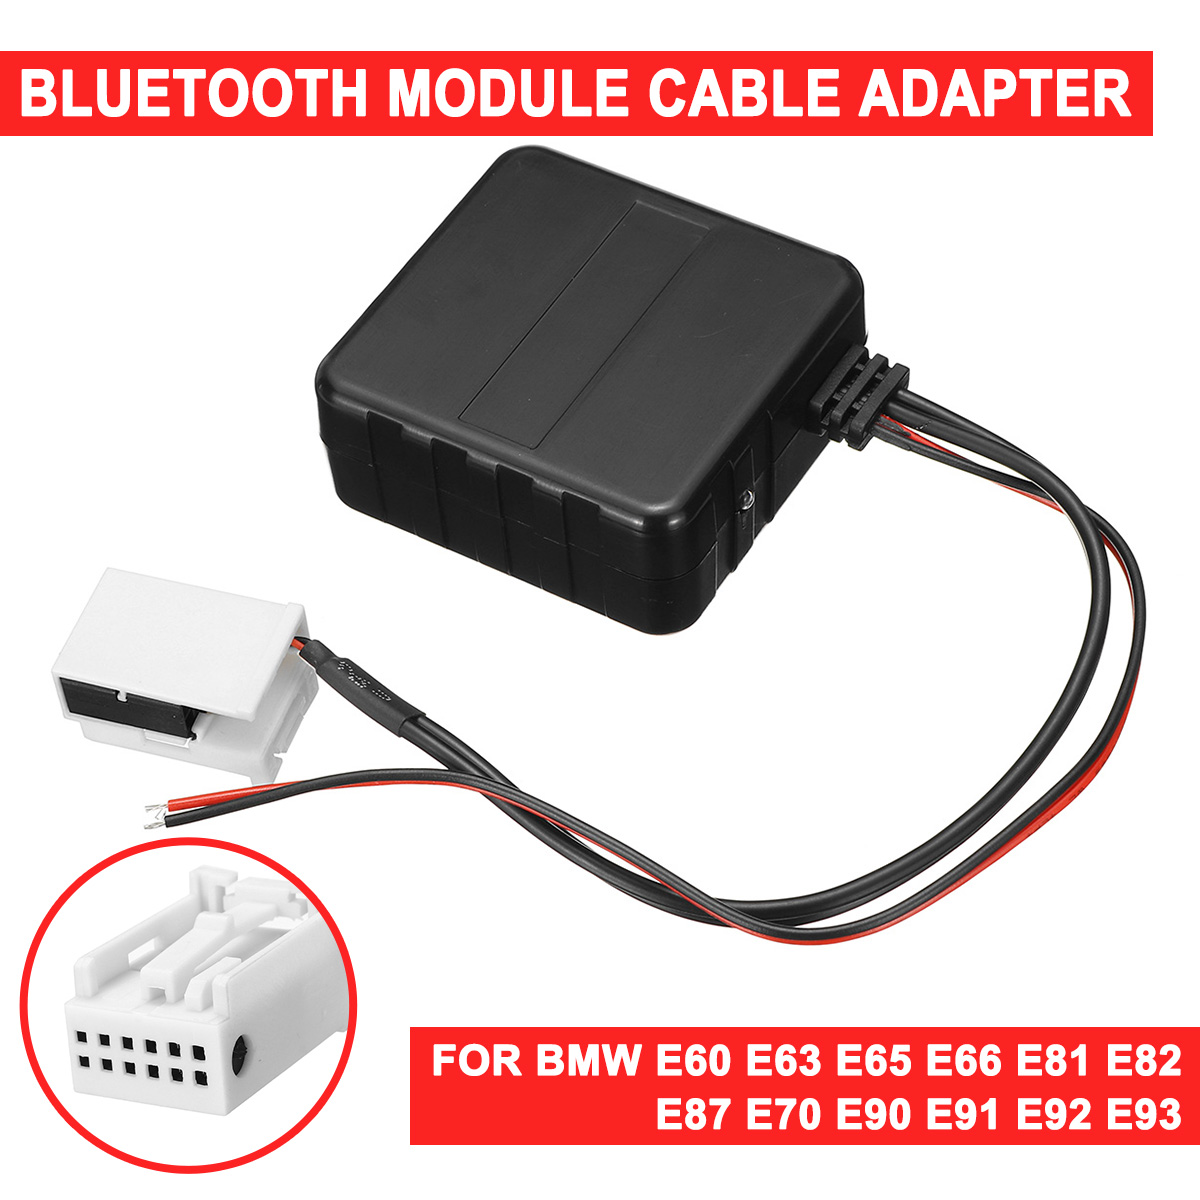 For BMW E60-E66 E70 E82 E87 E90 E92 12V AUX Cable <font><b>Adapter</b></font> <font><b>Car</b></font> <font><b>bluetooth</b></font> <font><b>5.0</b></font> Module Audio Radio Stereo AUX-IN Plastic image